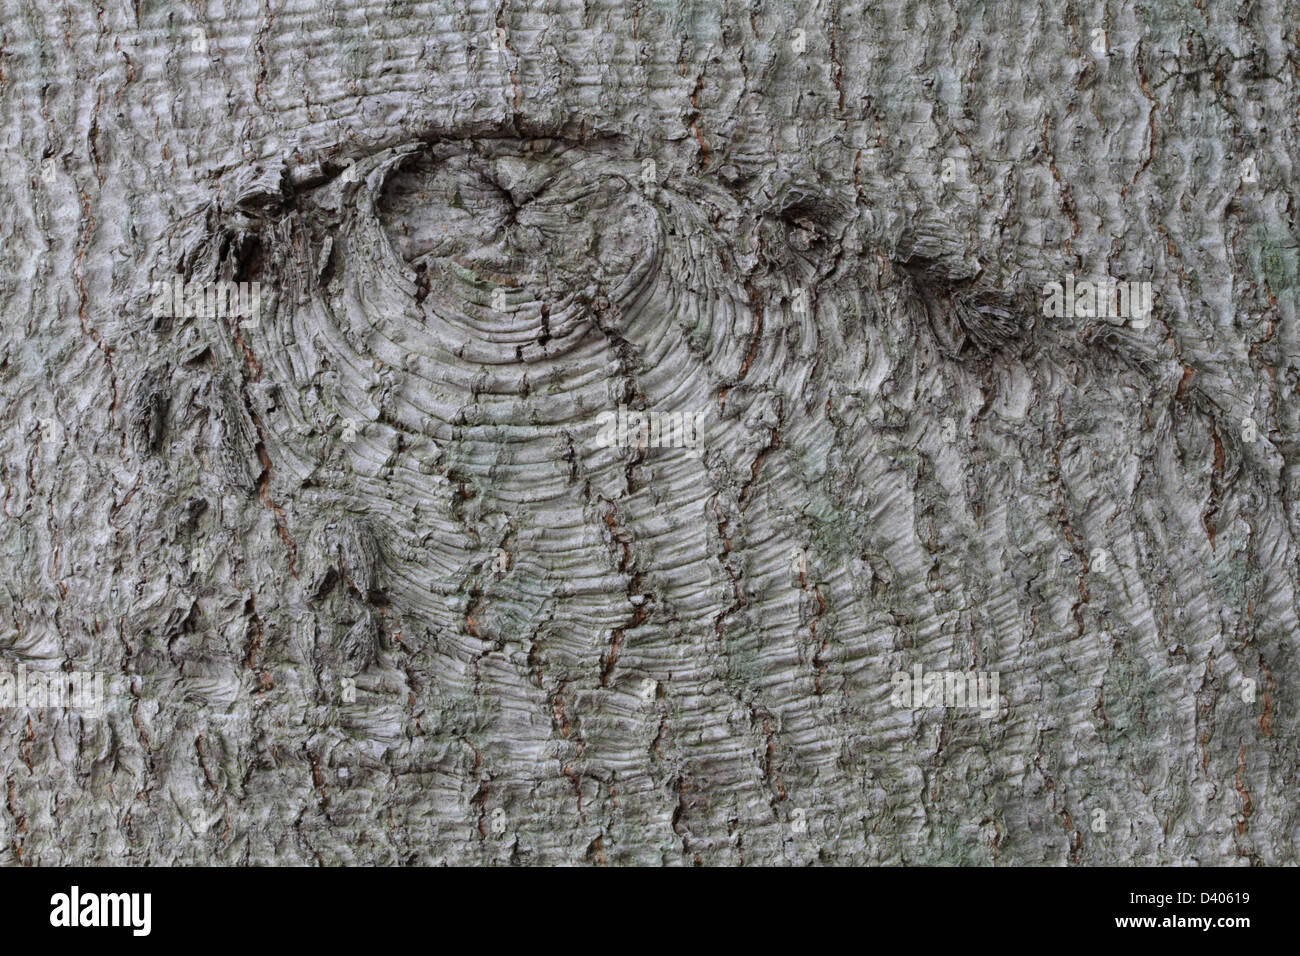 A branch scar in the bark of an American beech, Fagus grandifolia. - Stock Image